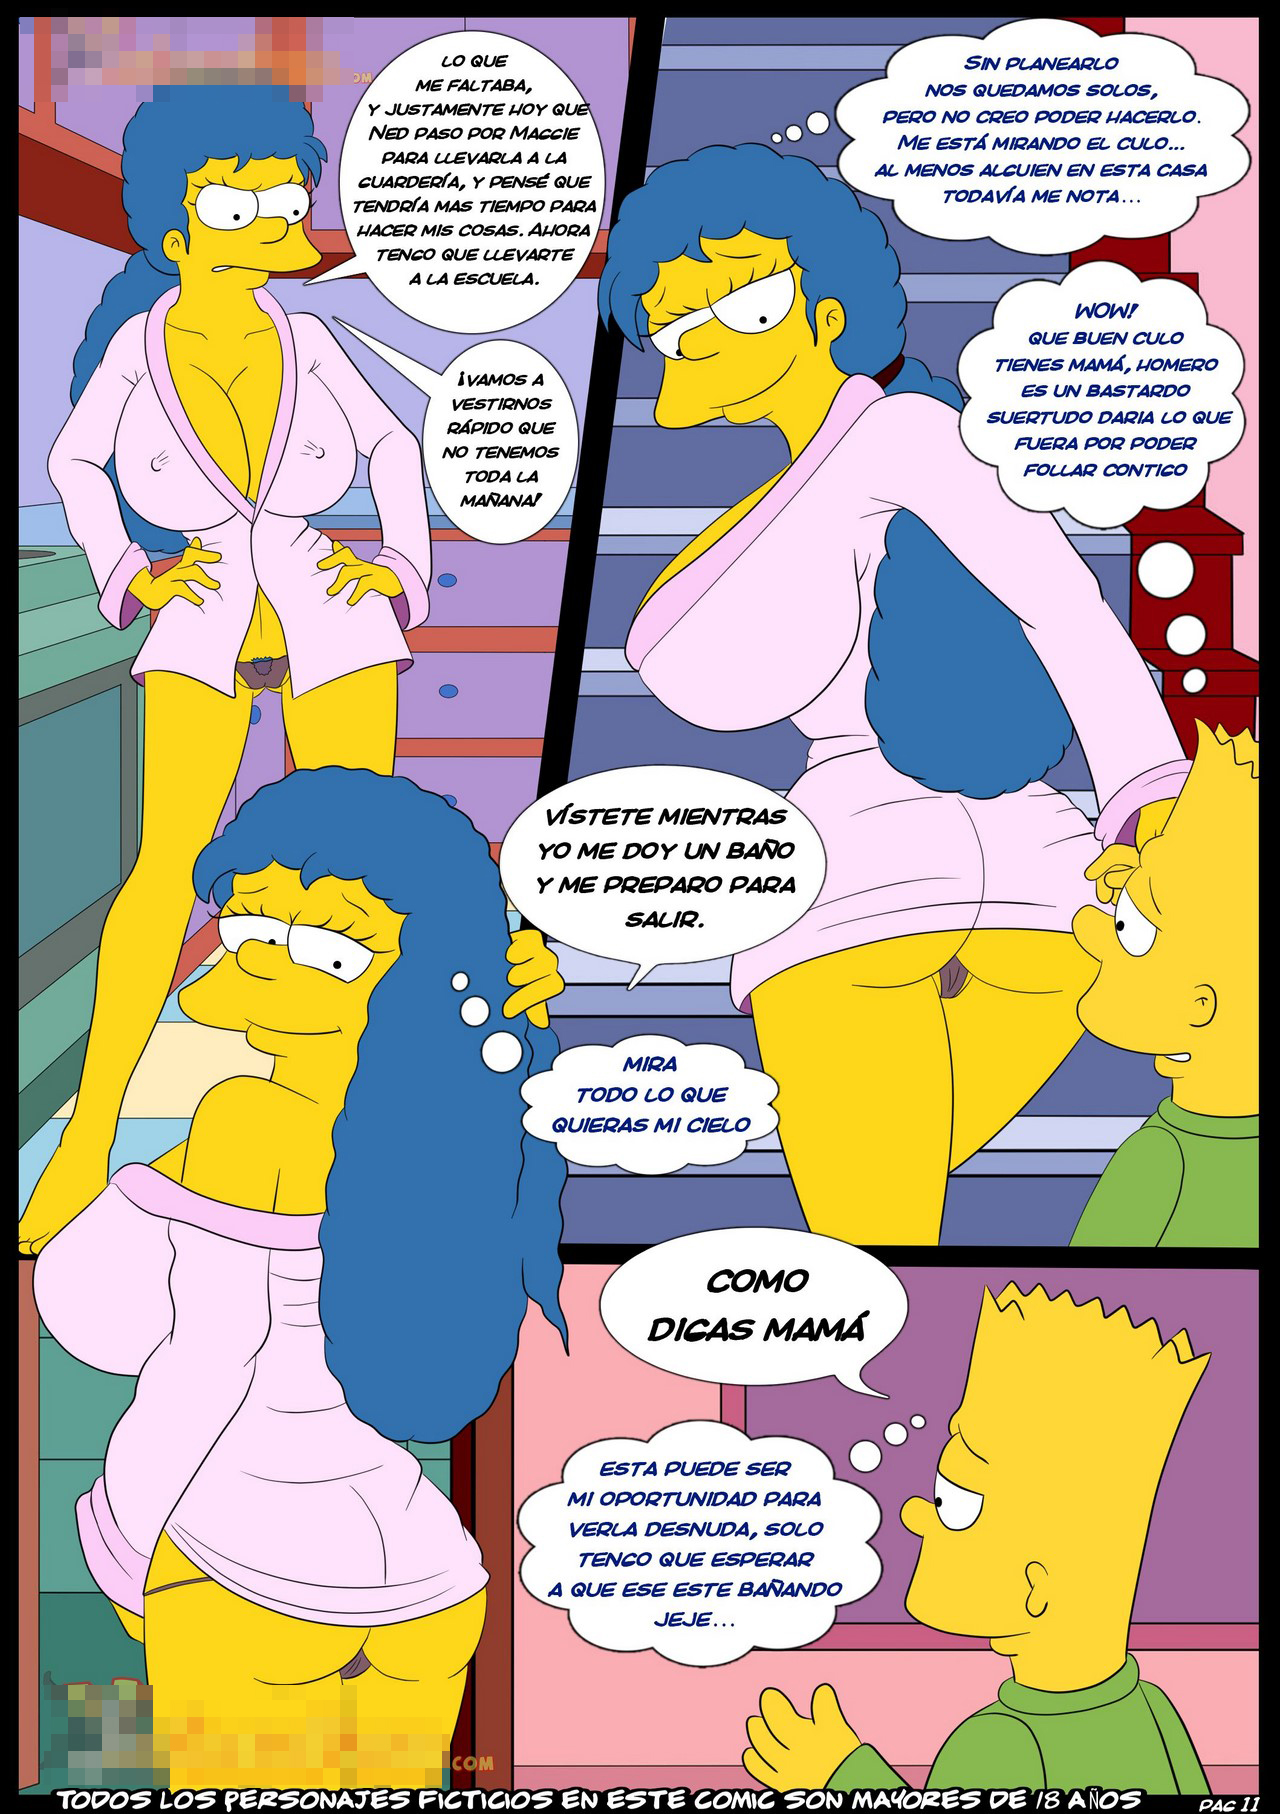 Los Simpsons xxx -incesto-bart-march-follando-cogiendo-sexo-desnuda-video-historieta-comic-los-simpsons-porno-follando-con-mama (12)